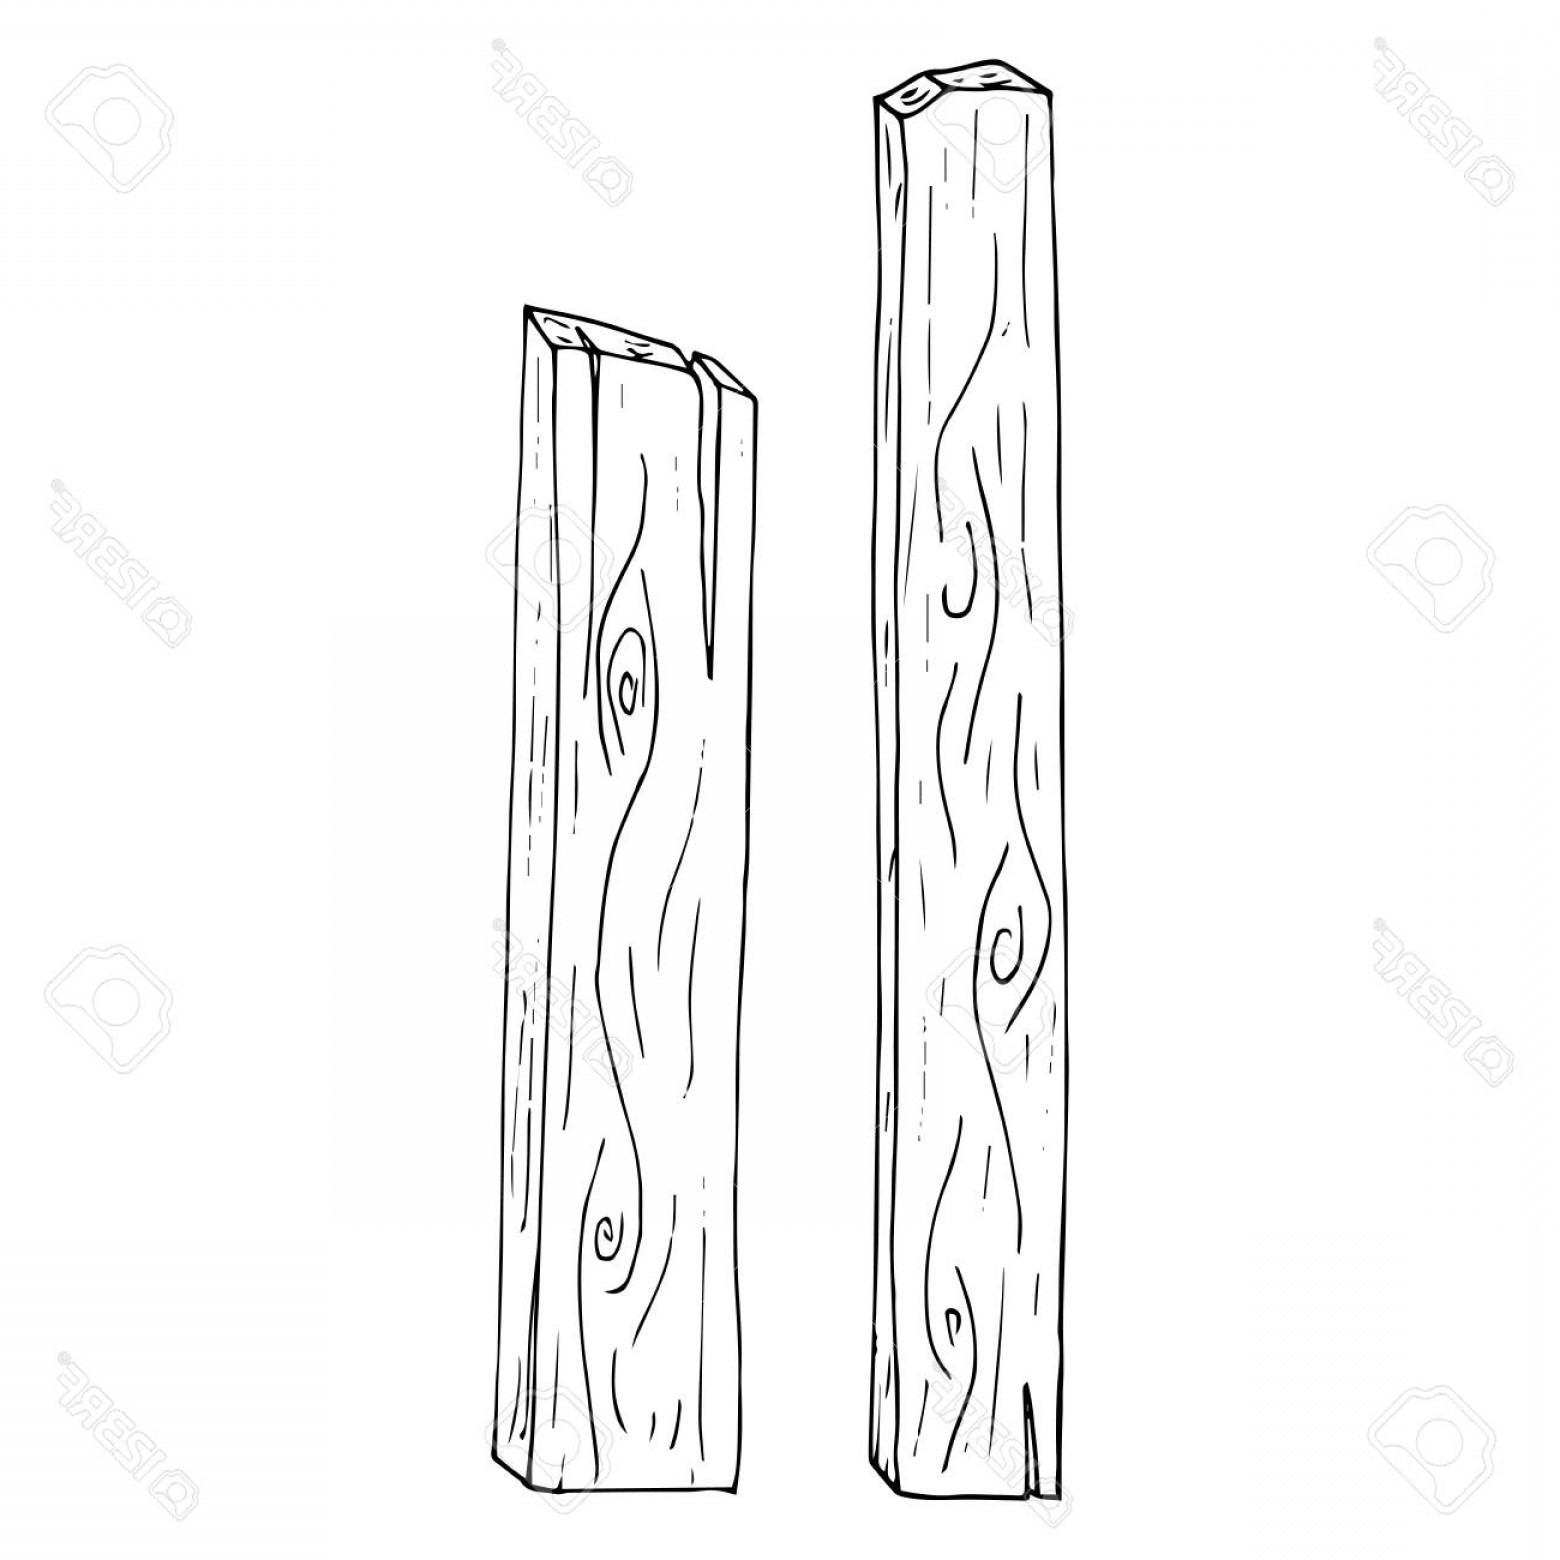 Wood Plank Vector Art: Photostock Vector Wooden Planks Vector Illustration Of Wood Planks With Wood Texture Hand Drawn Wooden Boards Planks